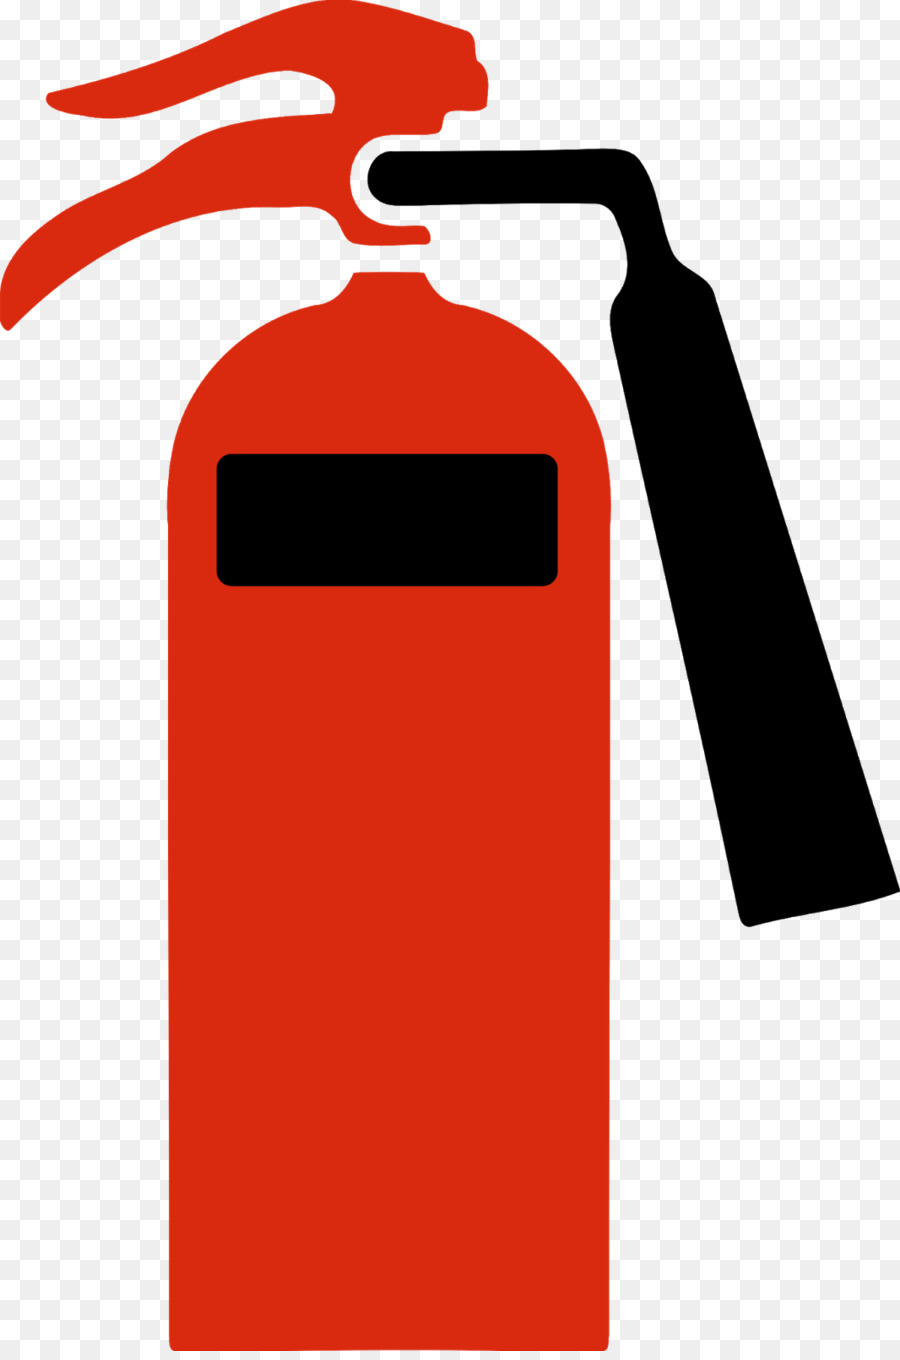 Fire Extinguisher Clipart Free.